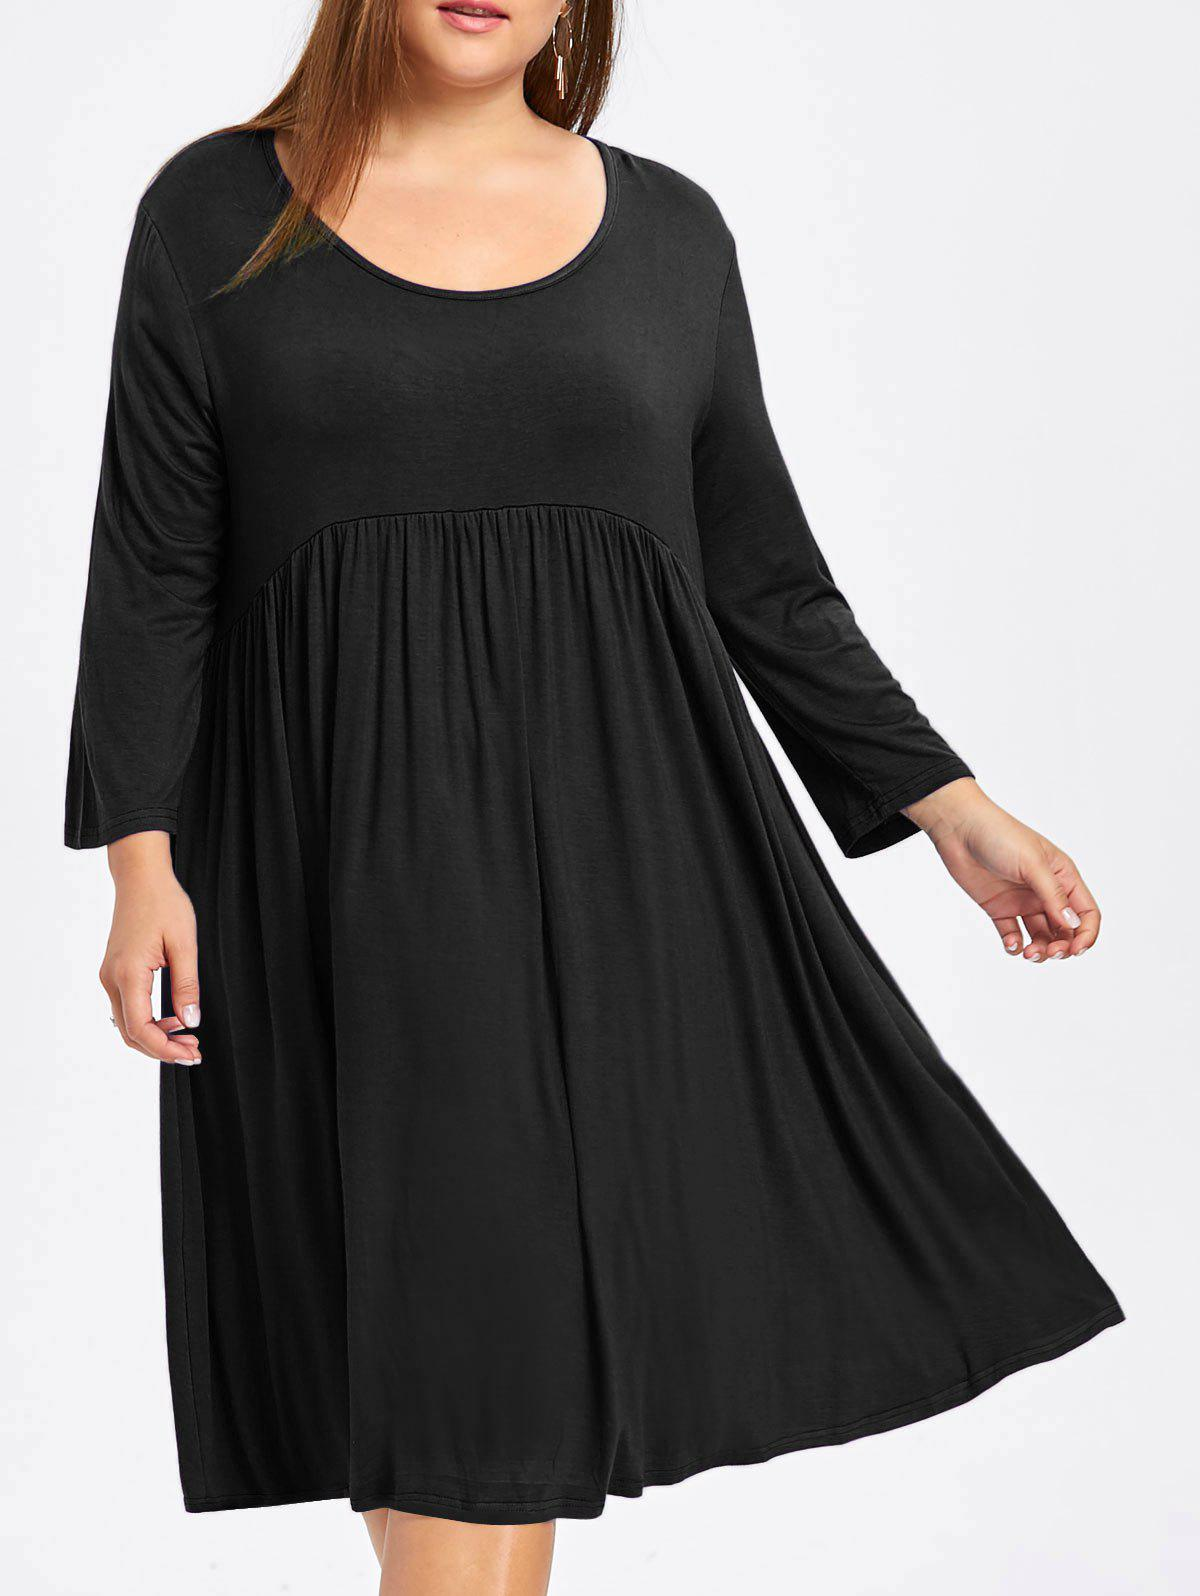 41affd7c56c3 32% OFF] Plus Size Empire Waist Smock Dress With Sleeves   Rosegal